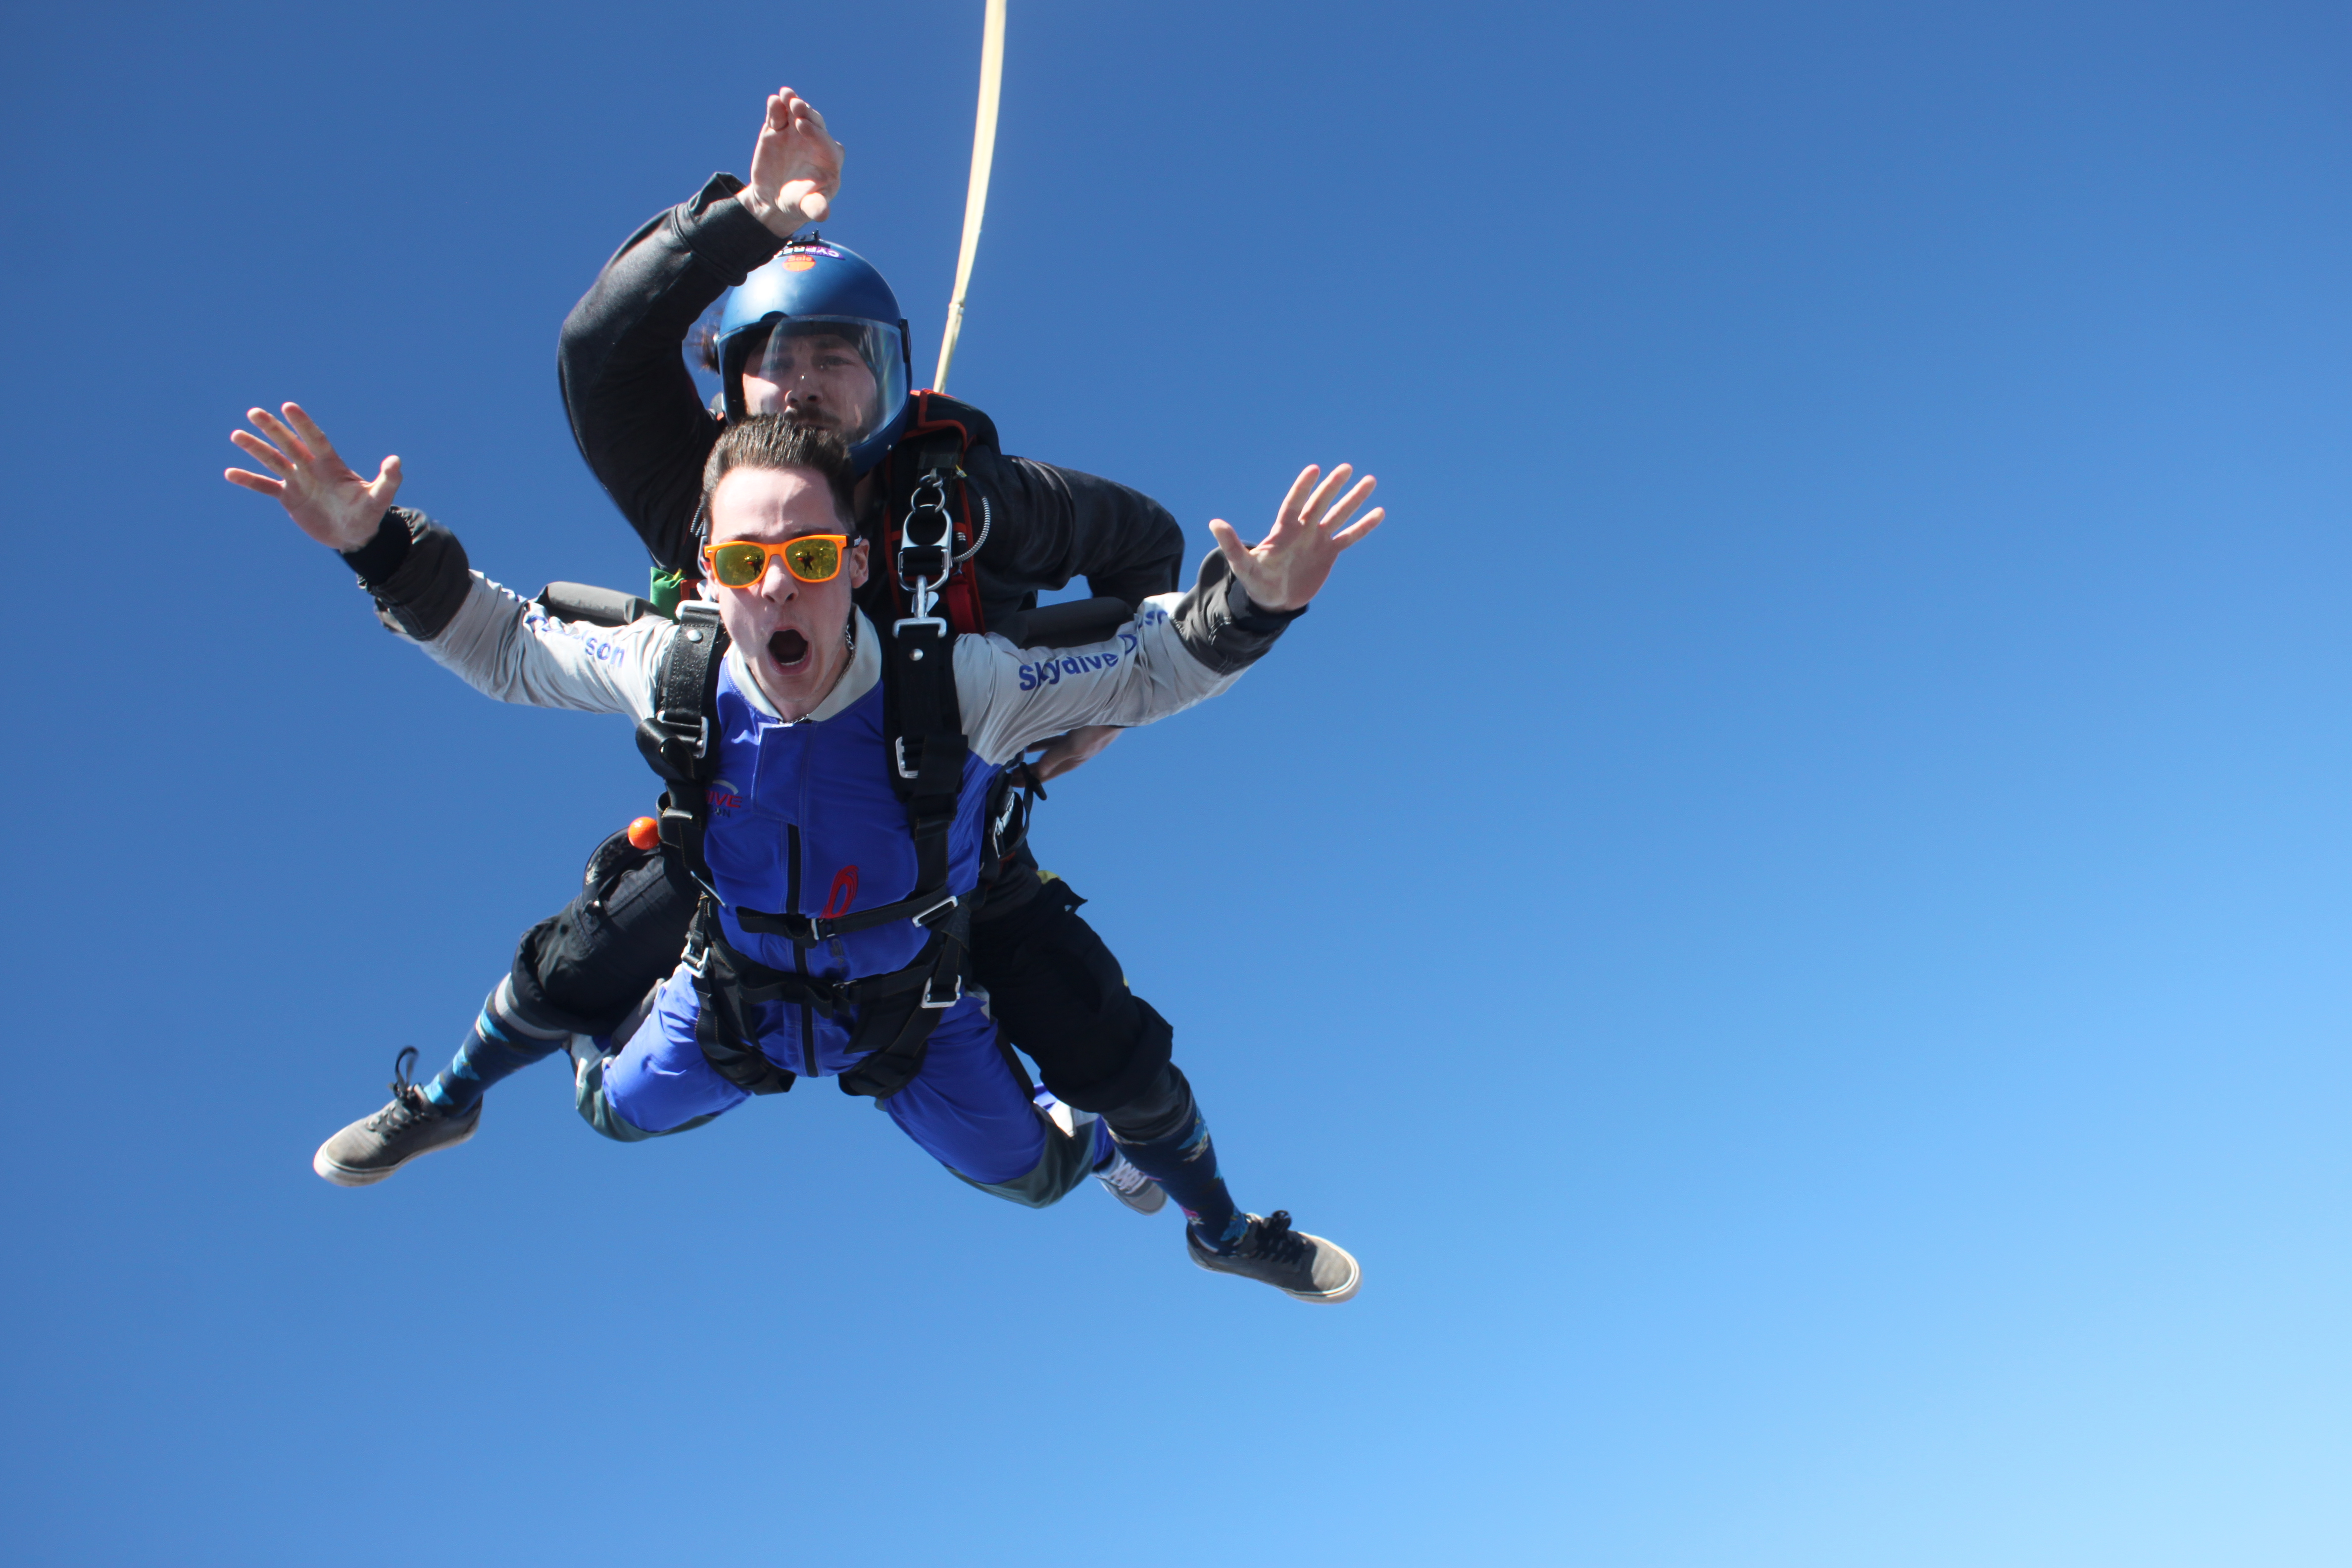 book a tandem skydive today with skydive danielson